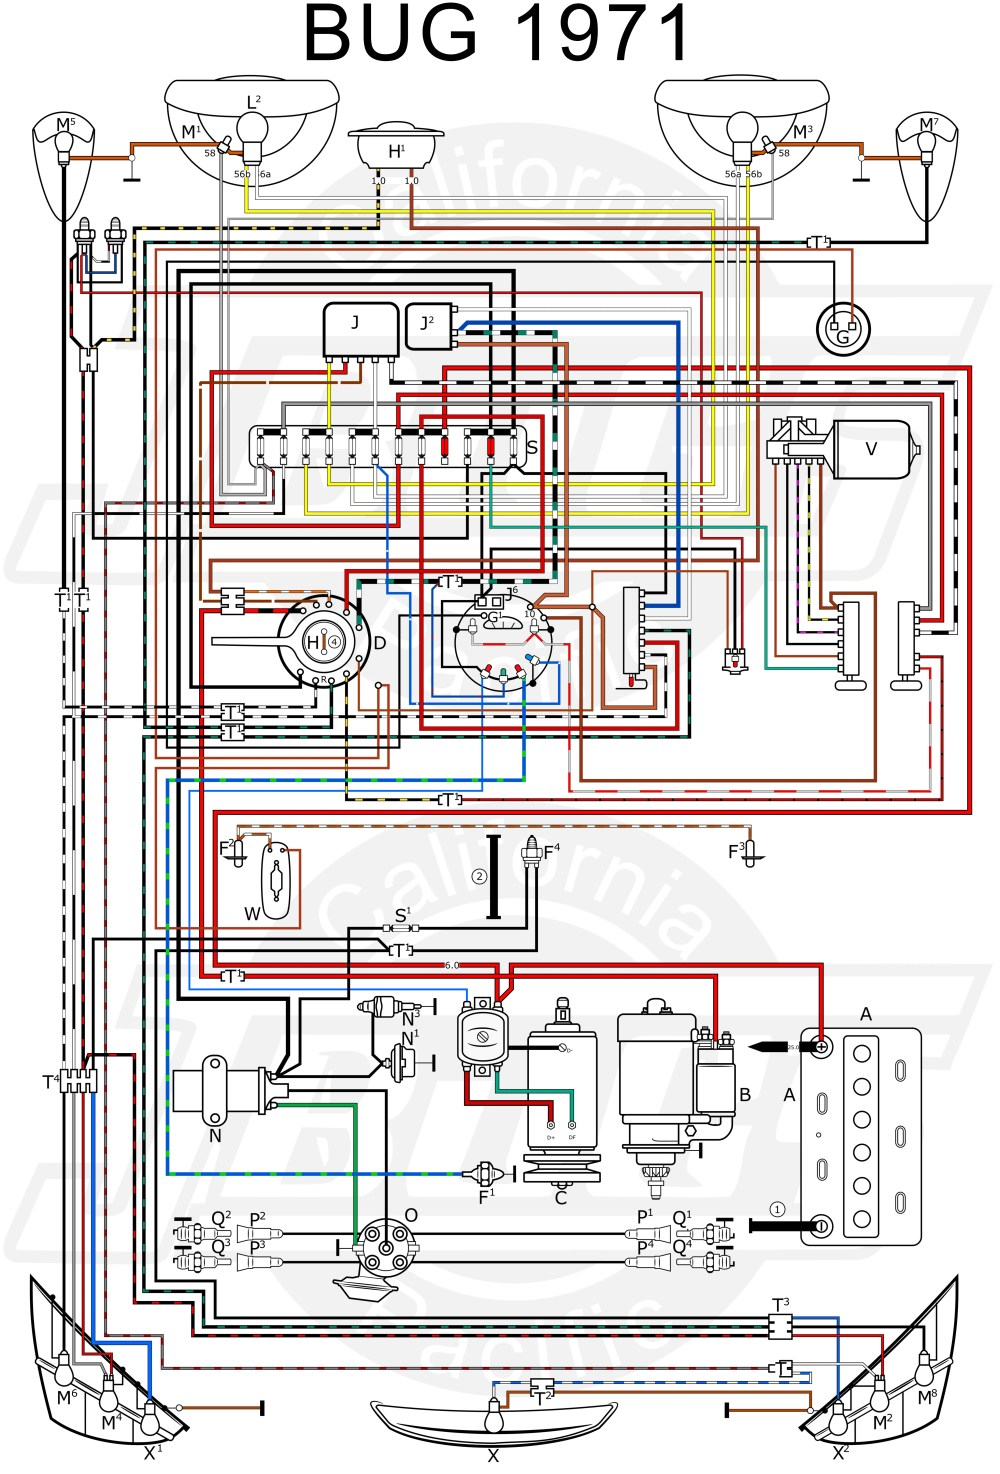 medium resolution of 1970 vw beetle wiring schematic schema wiring diagram online vanagon wiring diagram 1970 bug wiring diagram